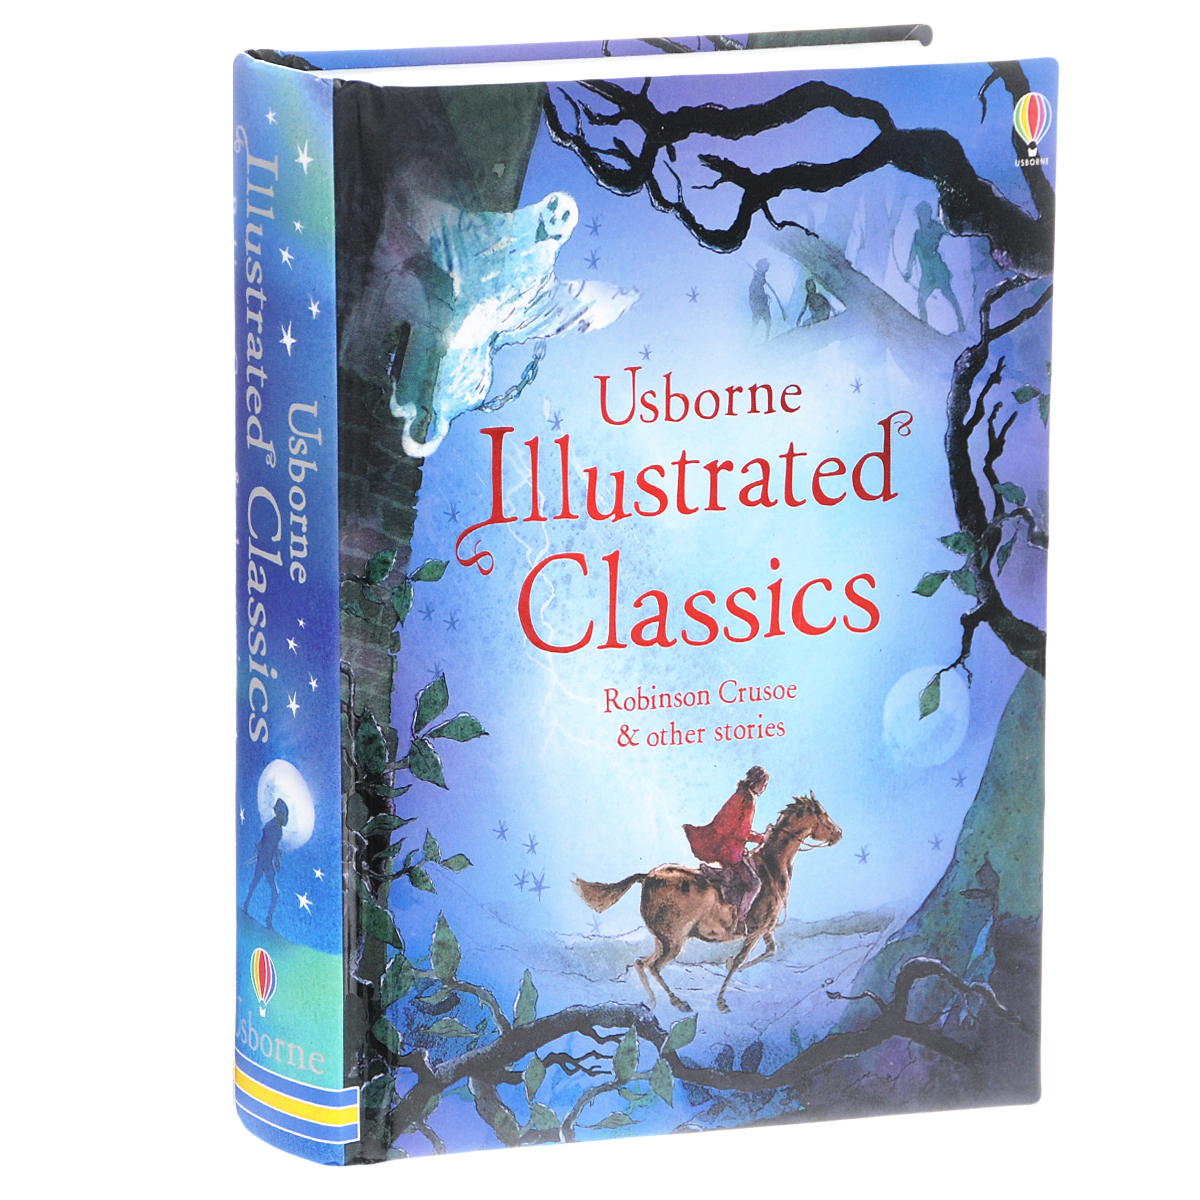 Usborne Illustrated Classics: Robinson Crusoe & Other Stories travels of the zephyr journey around the world